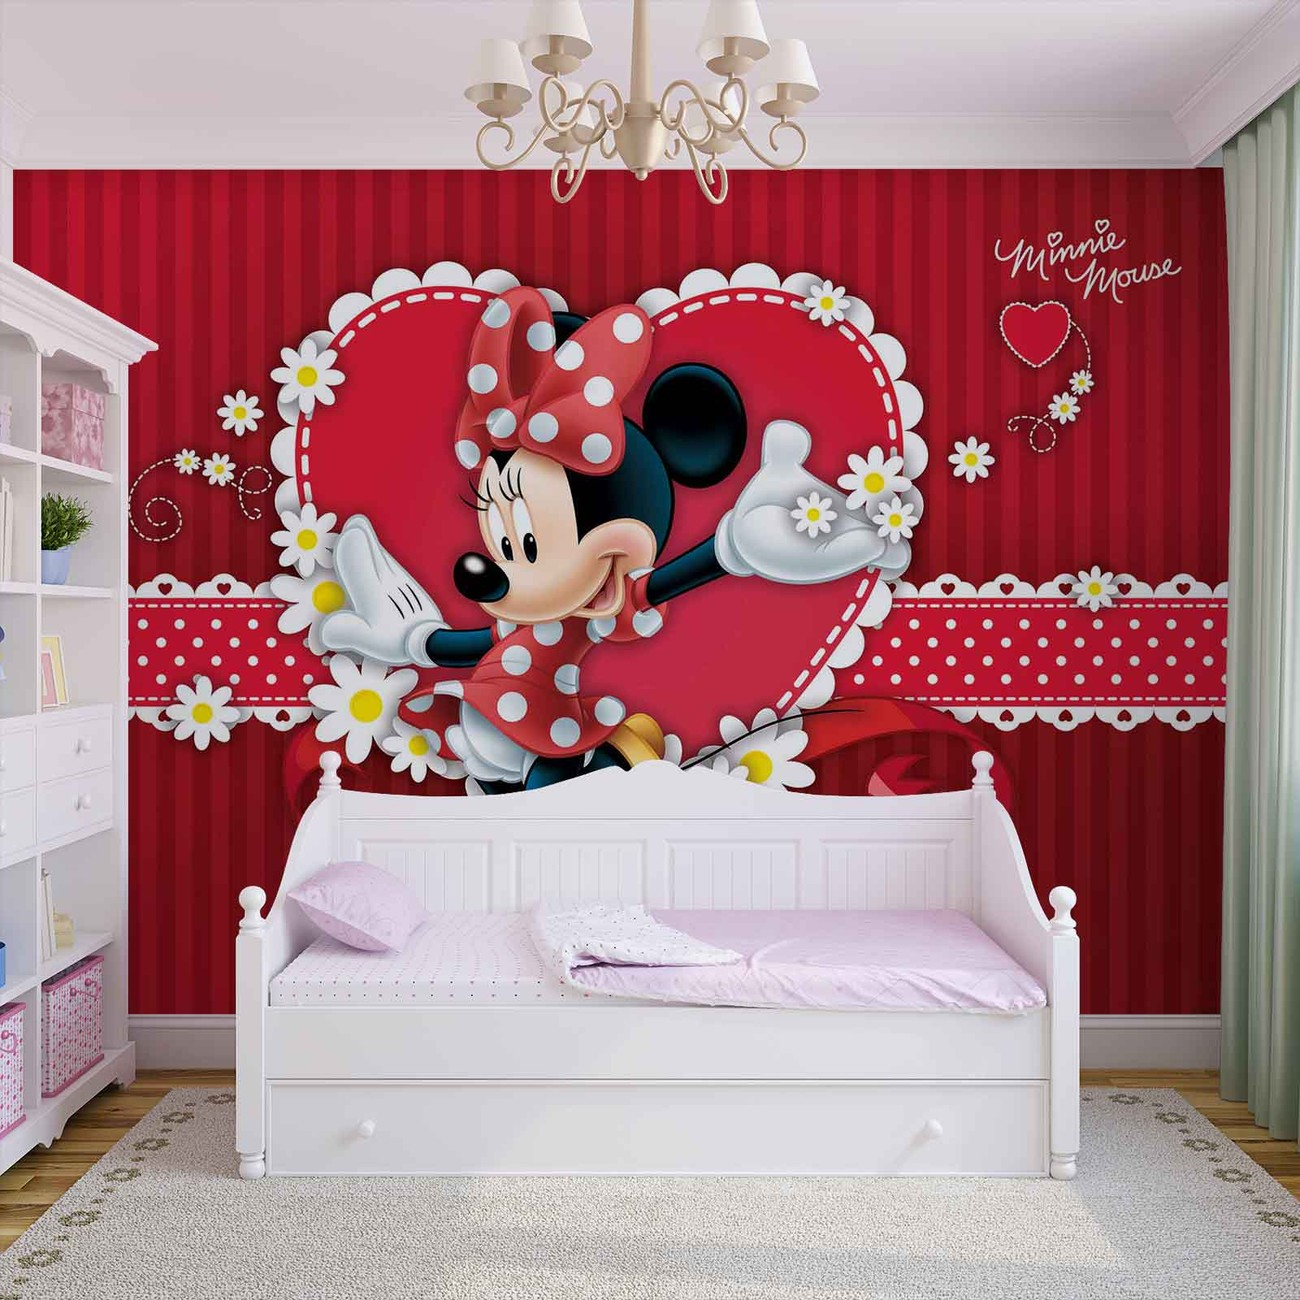 Fototapete Kinderzimmer Minnie Mouse Disney Minnie Mouse Fototapete